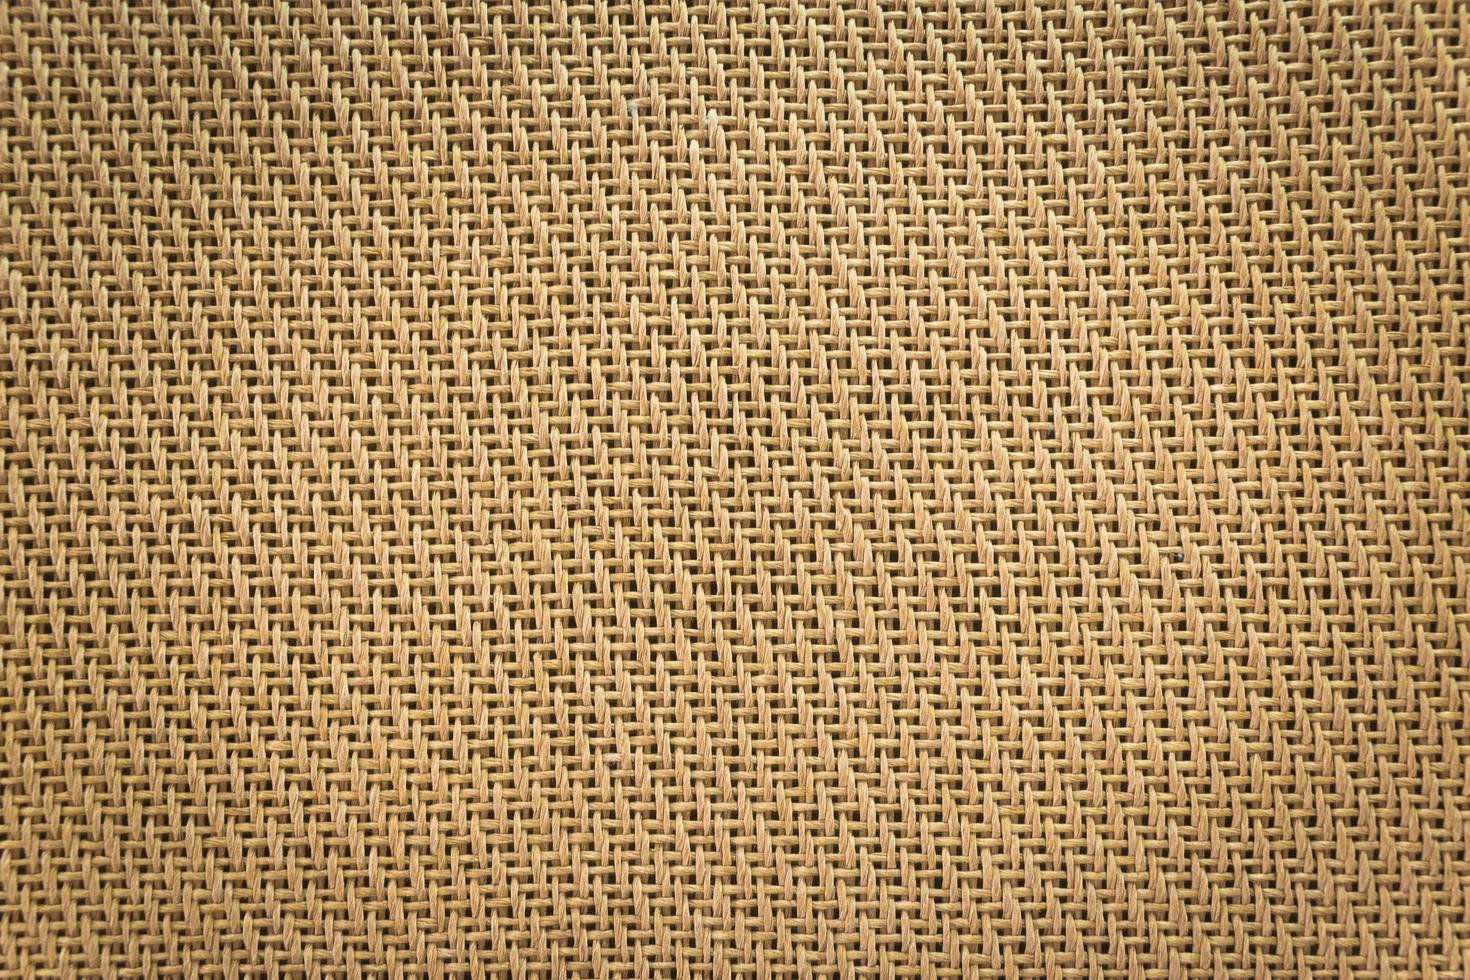 Brown textile surface photo